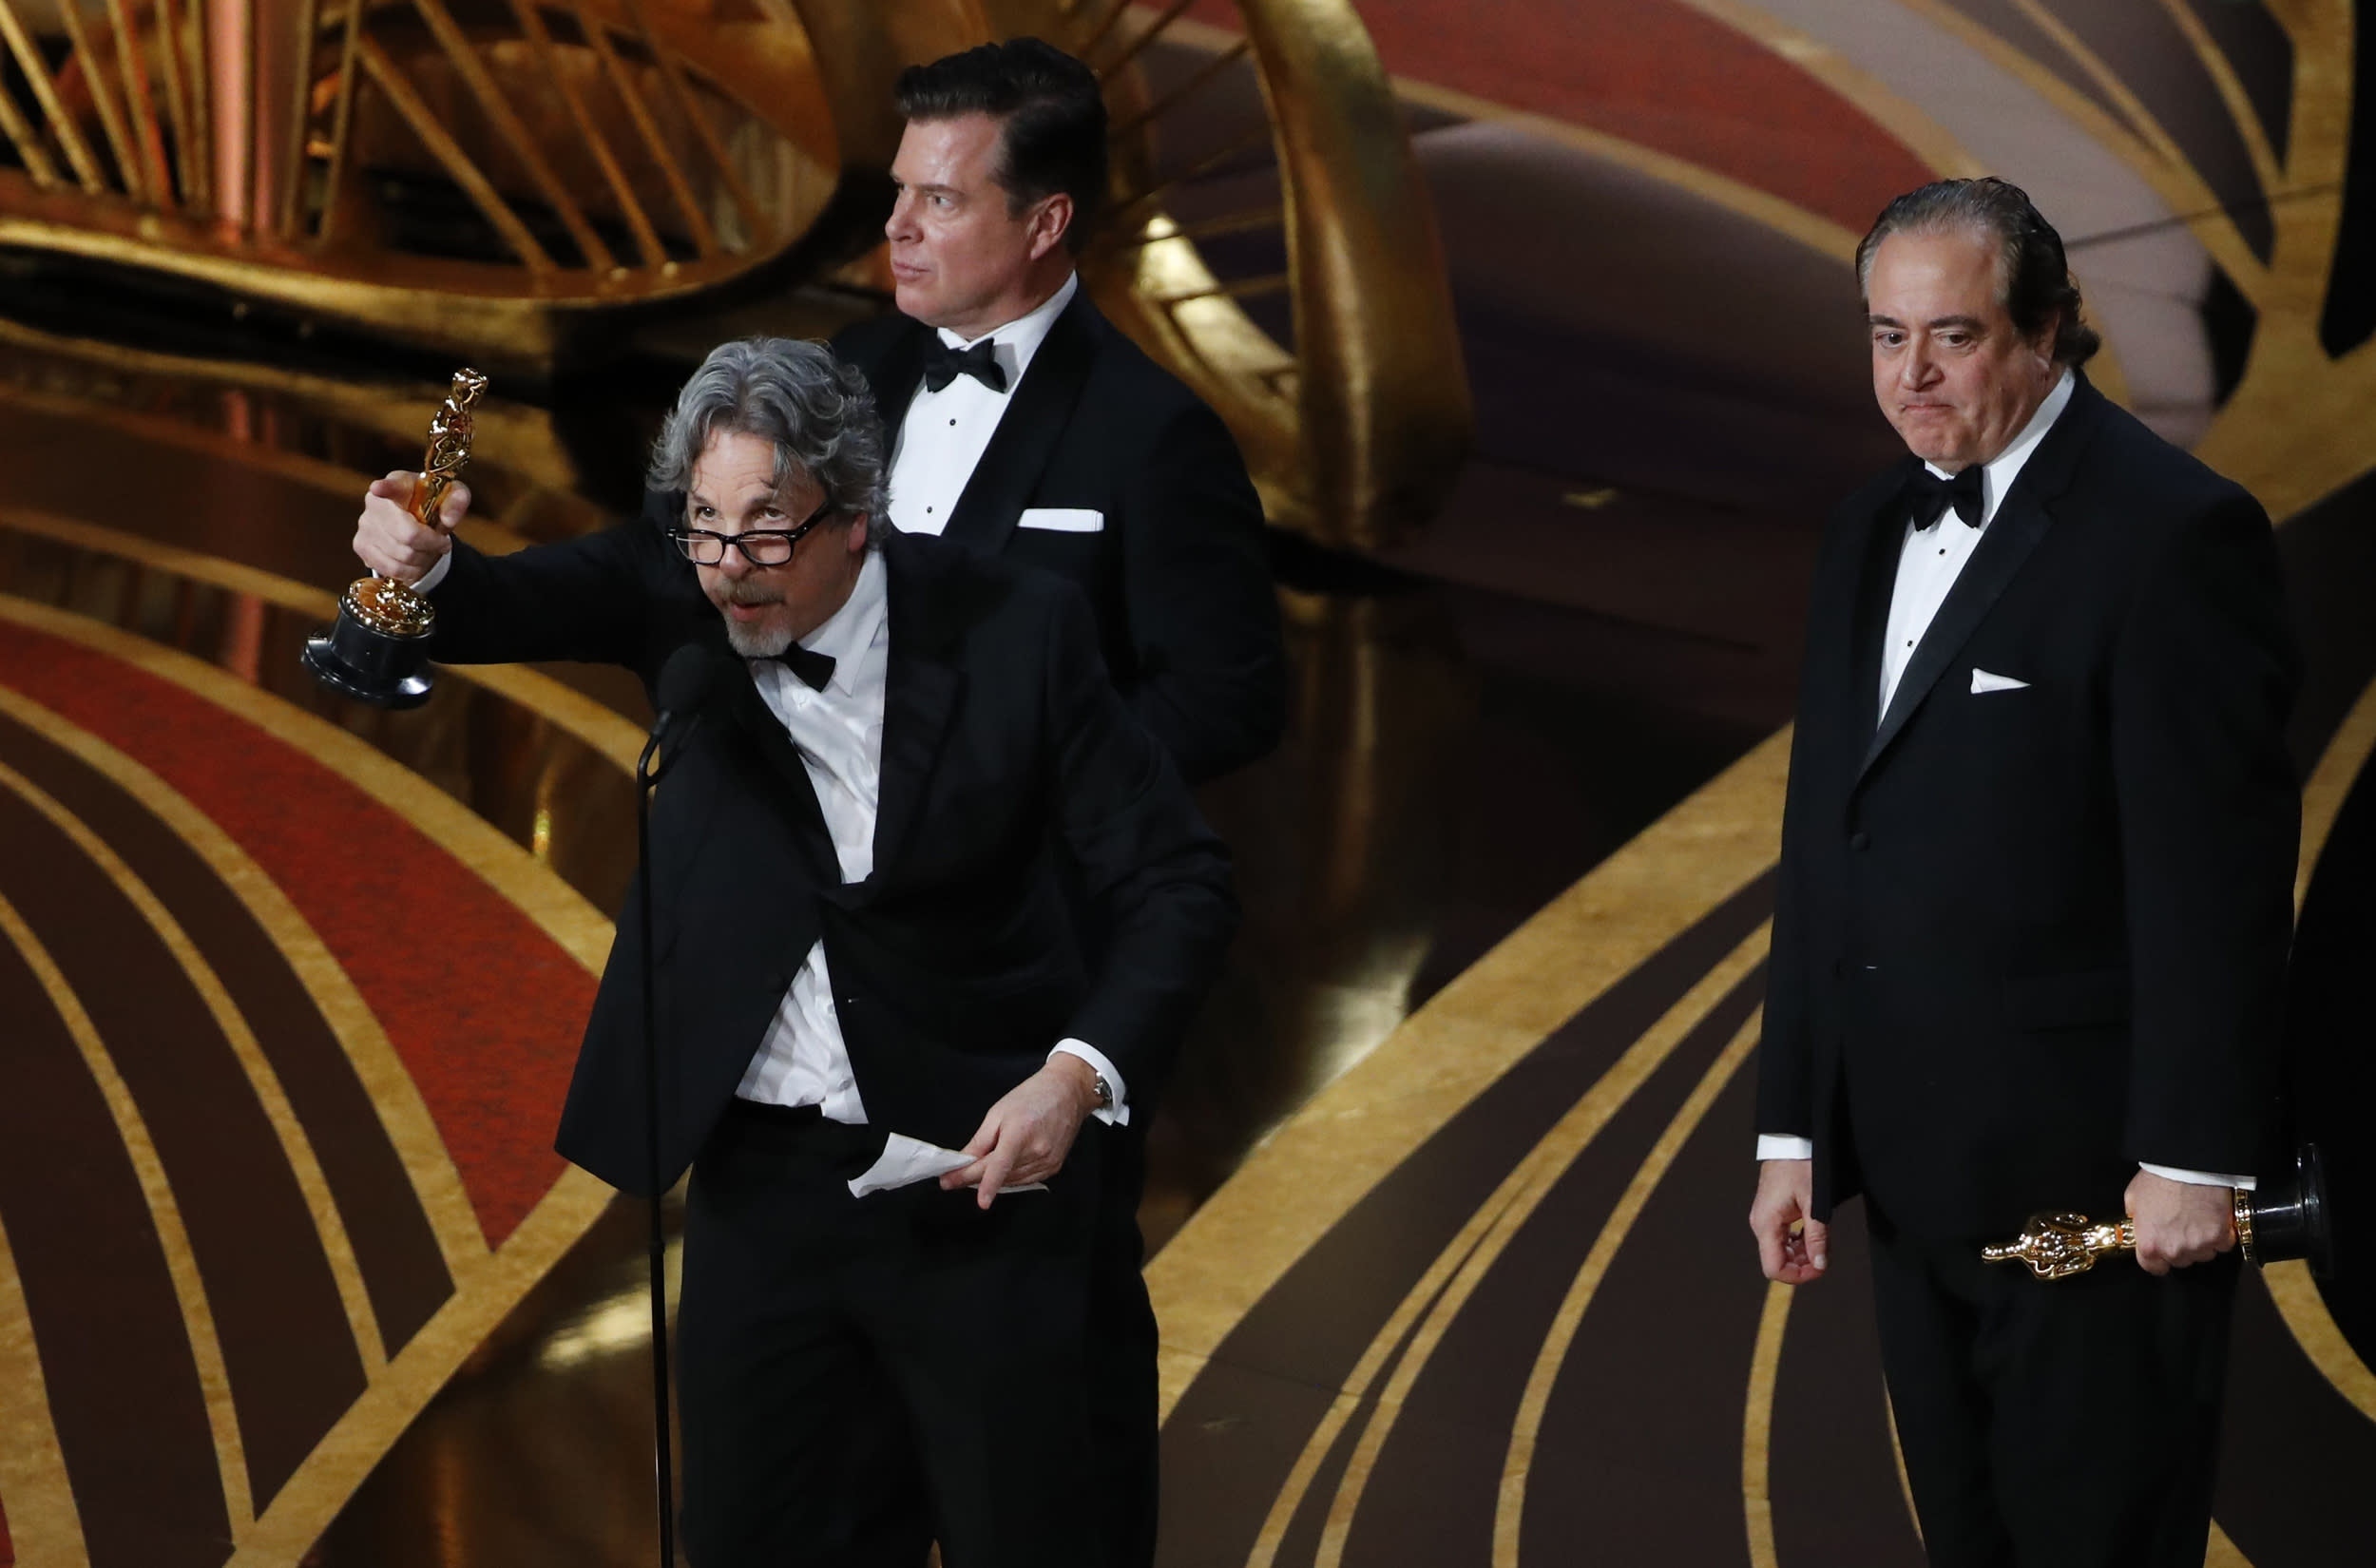 """91st Academy Awards - Oscars Show - Hollywood, Los Angeles, California, U.S., February 24, 2019.  Nick Vallelonga, Brian Currie and Peter Farrelly accept the Best Original Screenplay award for """"Green Book"""". REUTERS/Mike Blake"""